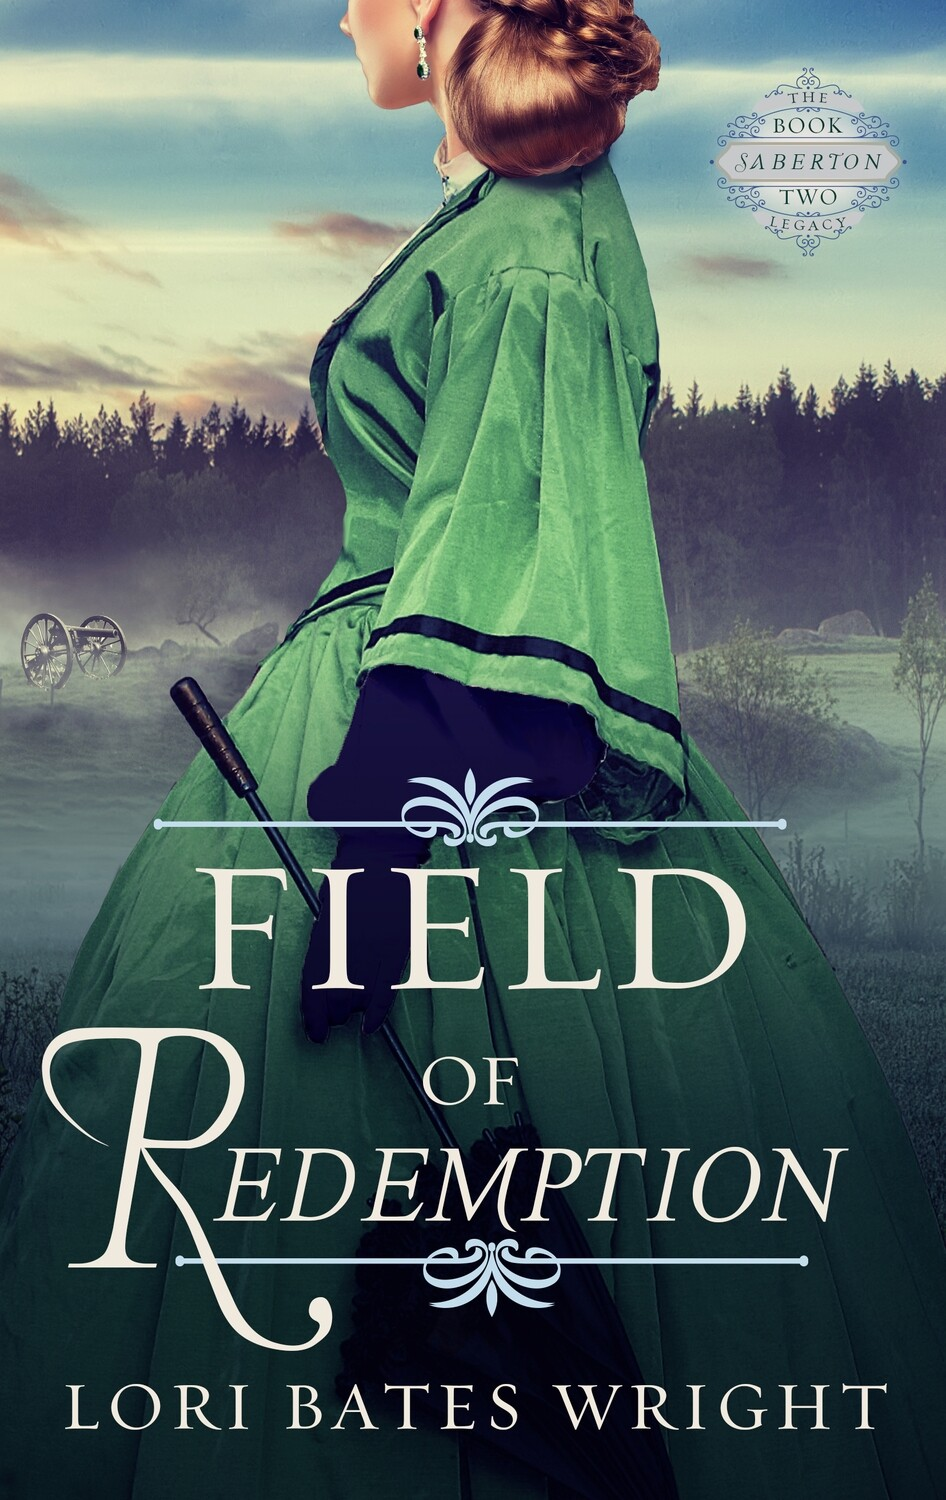 Field of Redemption (Signed) INCLUDES SHIPPING